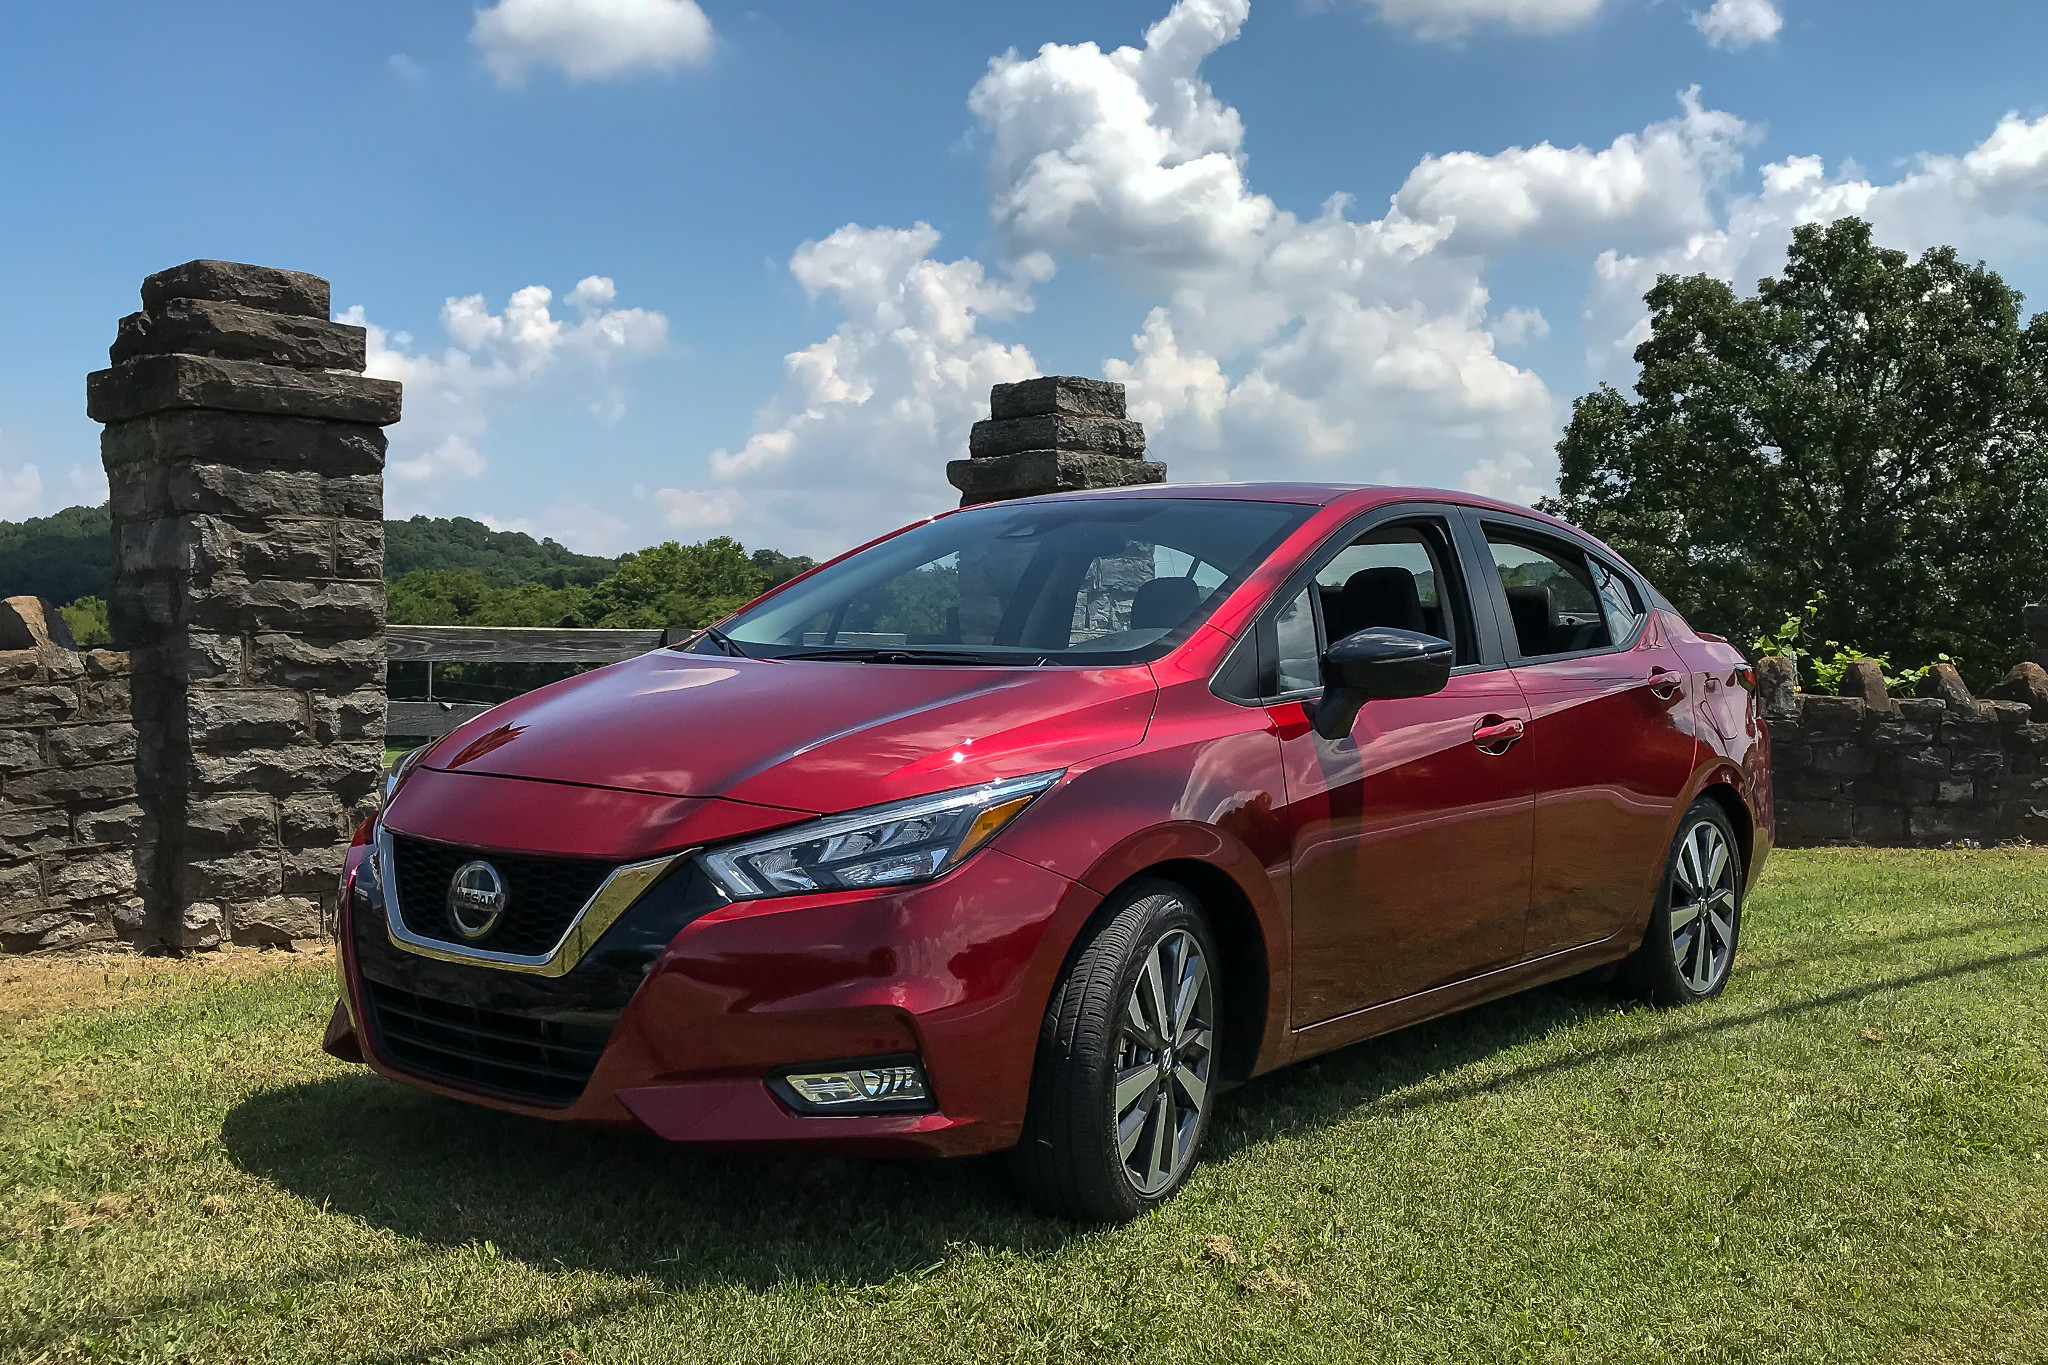 2020 Nissan Versa First Drive: Still Cheap But Not as Basic